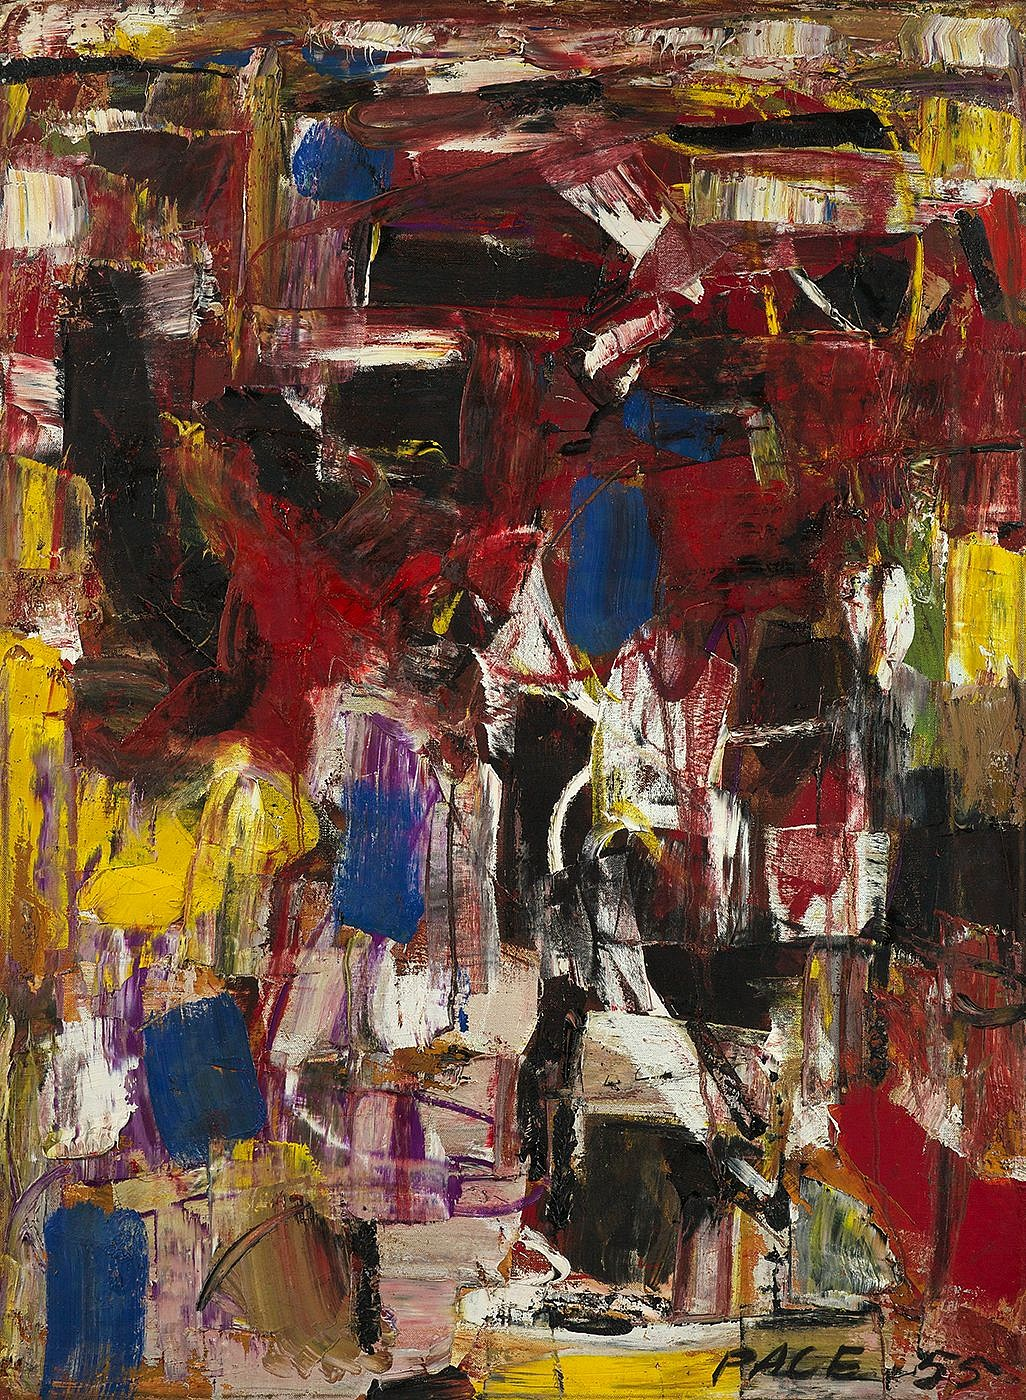 PRESS RELEASE: Stephen Pace: Abstract Expressionist, Oct 16 - Nov 15, 2014